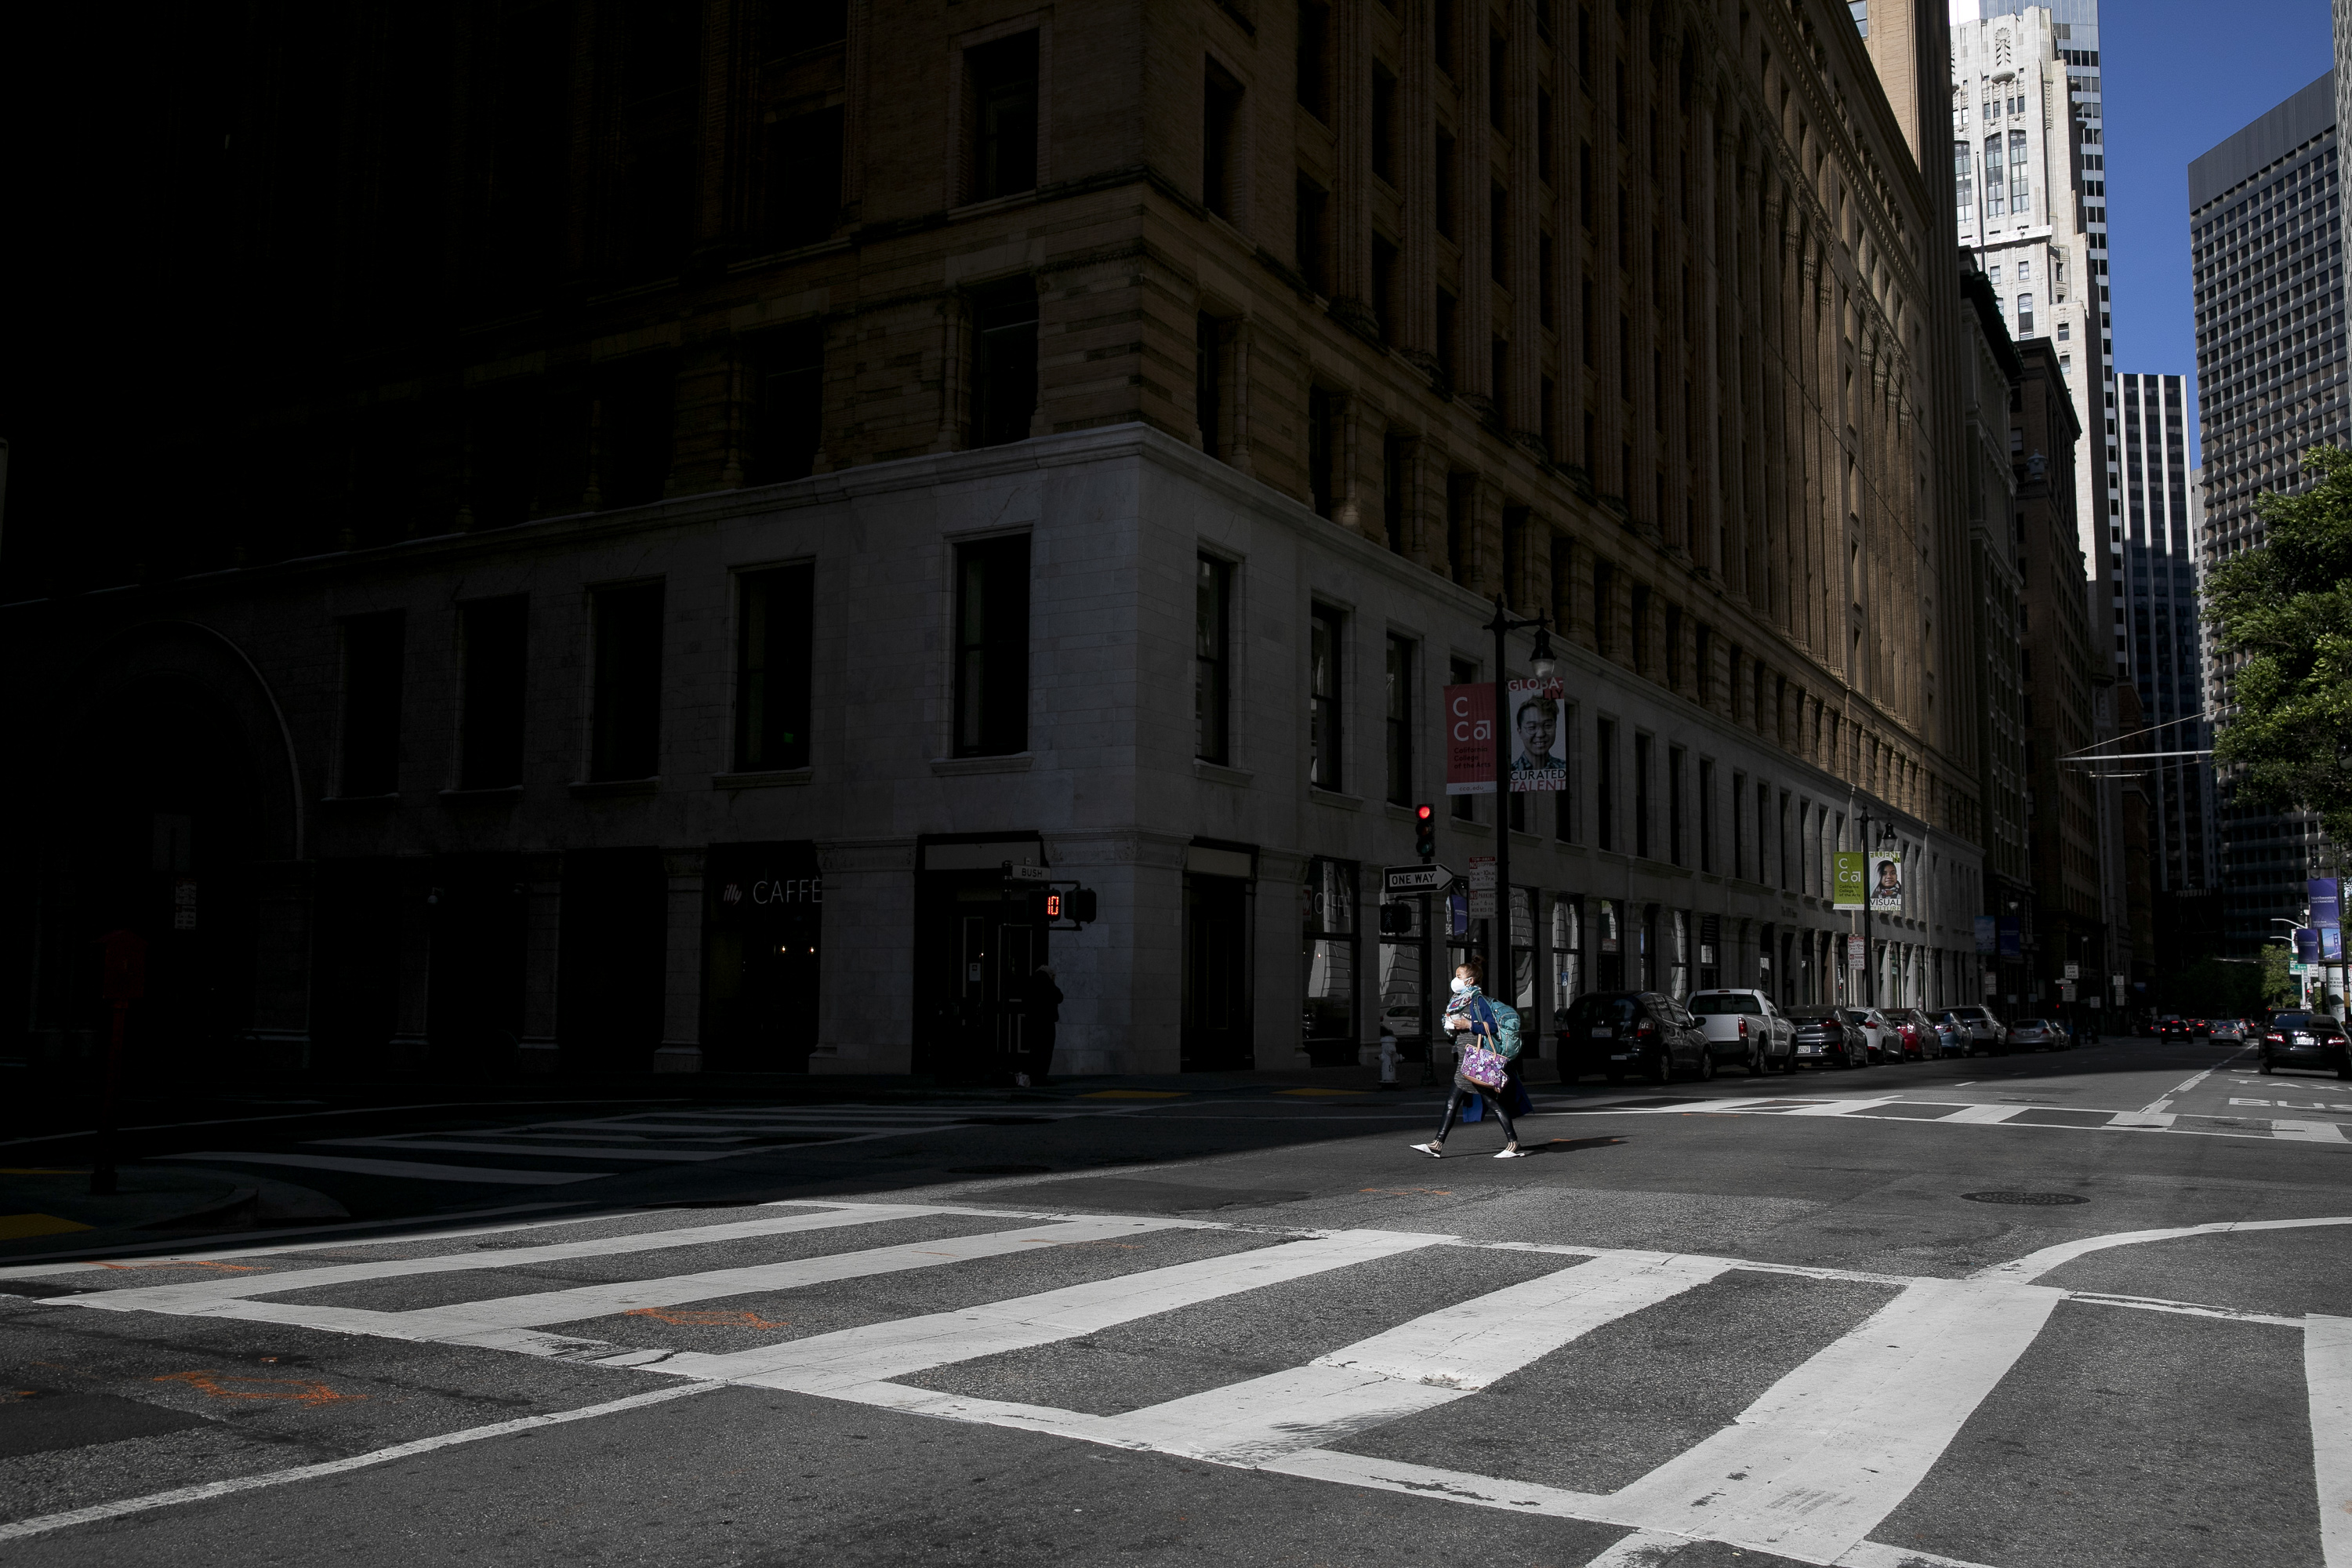 A pedestrian crosses an empty intersection in San Francisco financial district at evening rush hour on May 7, 2020. San Francisco county has announced they will maintain shelter in place orders through the end of May. Photo by Anne Wernikoff for CalMatters